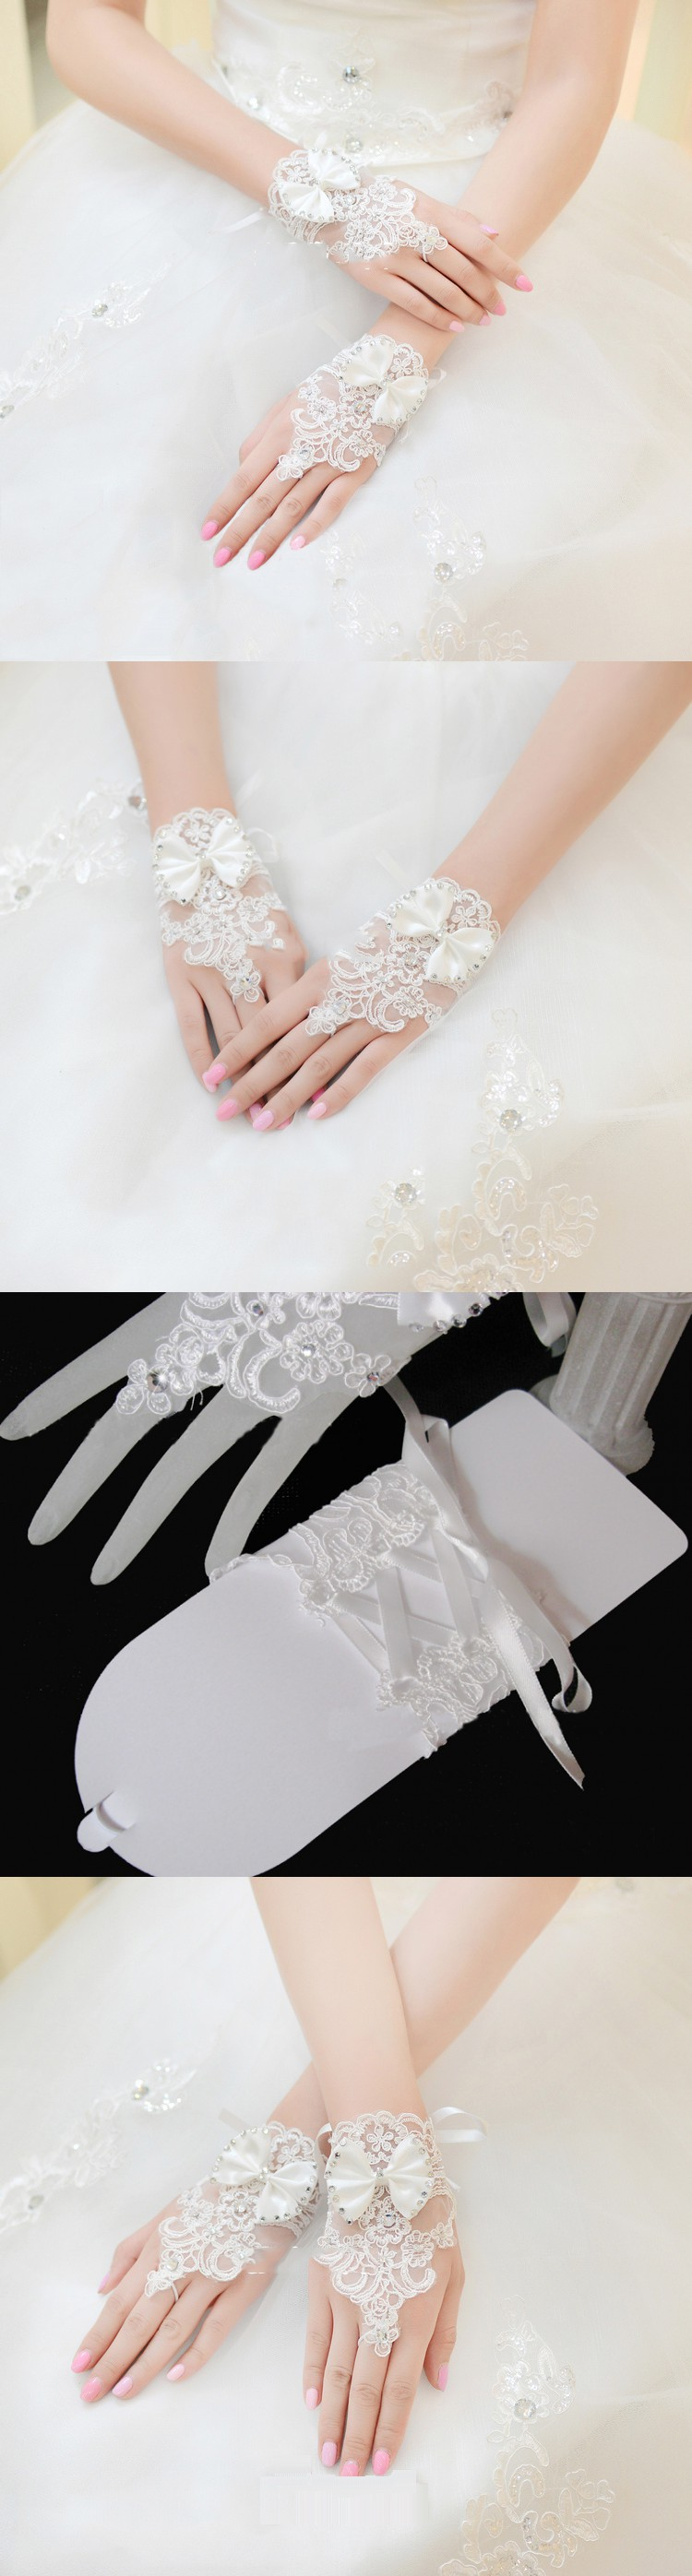 korean fashion wrist flower lace diamond bridal gloves wedding